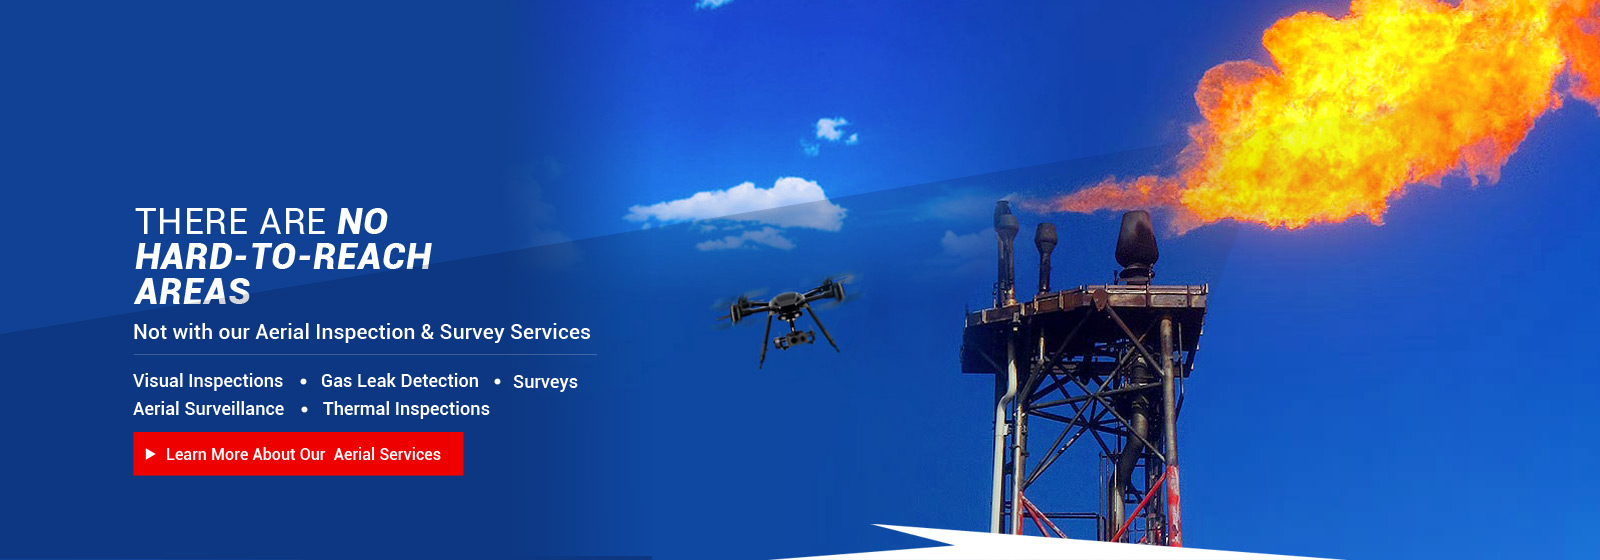 Aerial Inspection and Survey Services